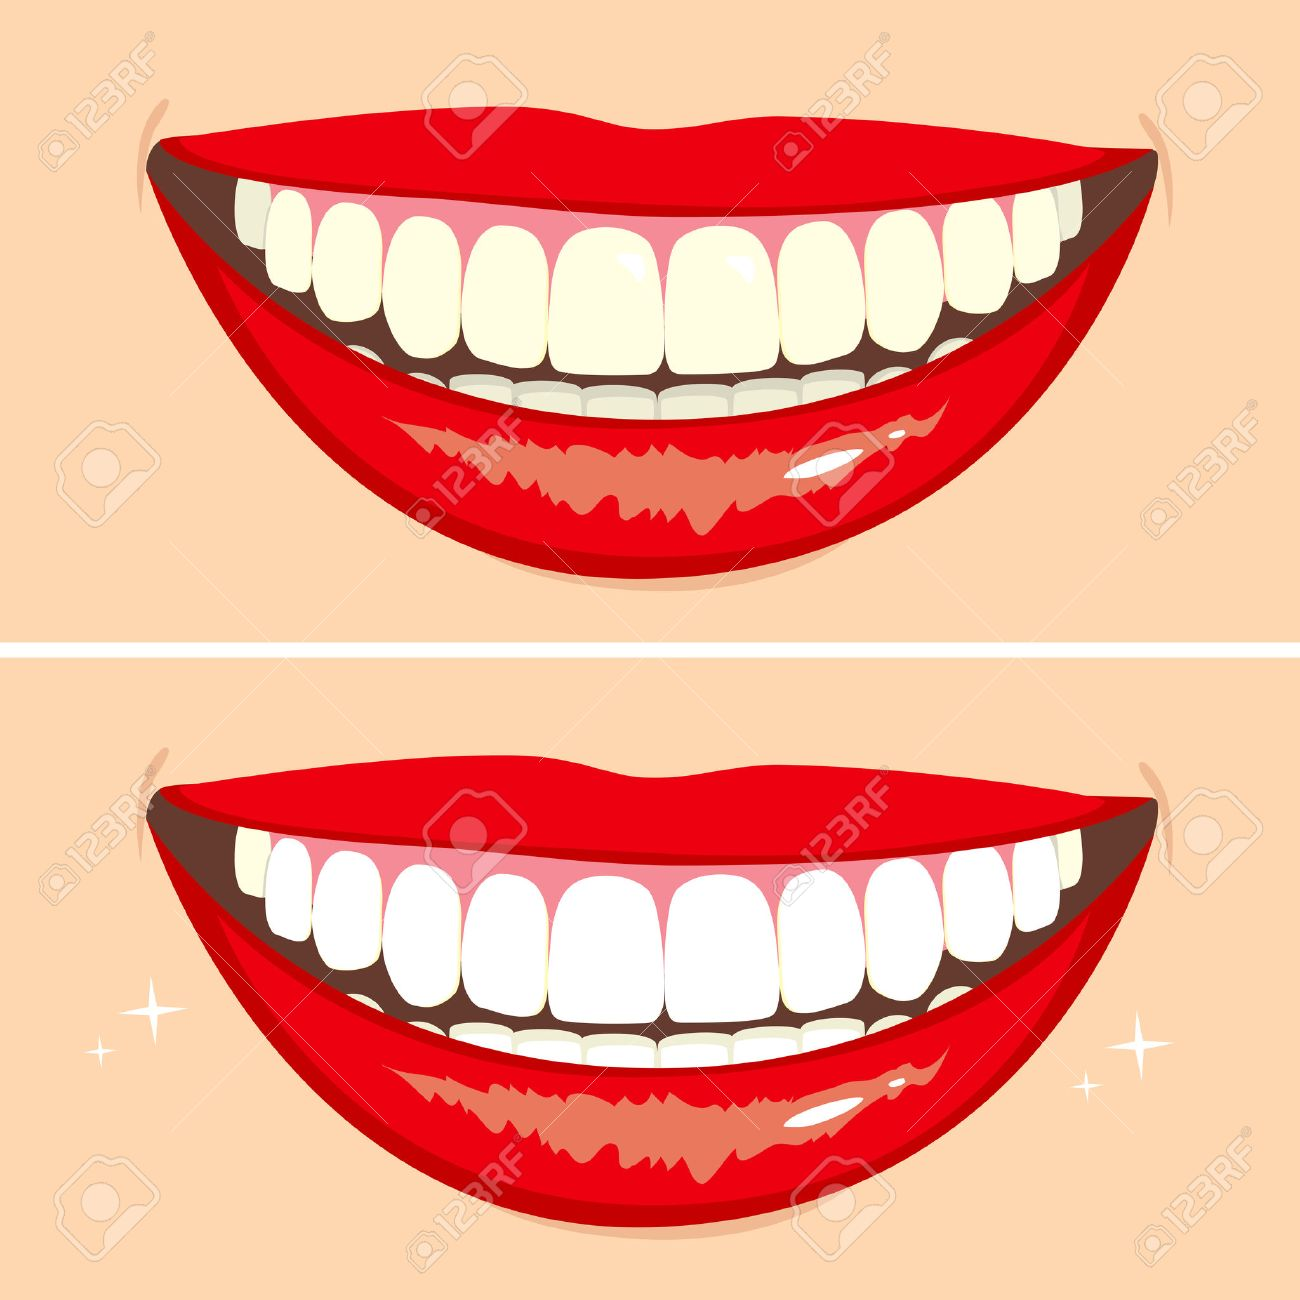 Illustration of two happy smiles showing before and after whitening teeth process - 25953509